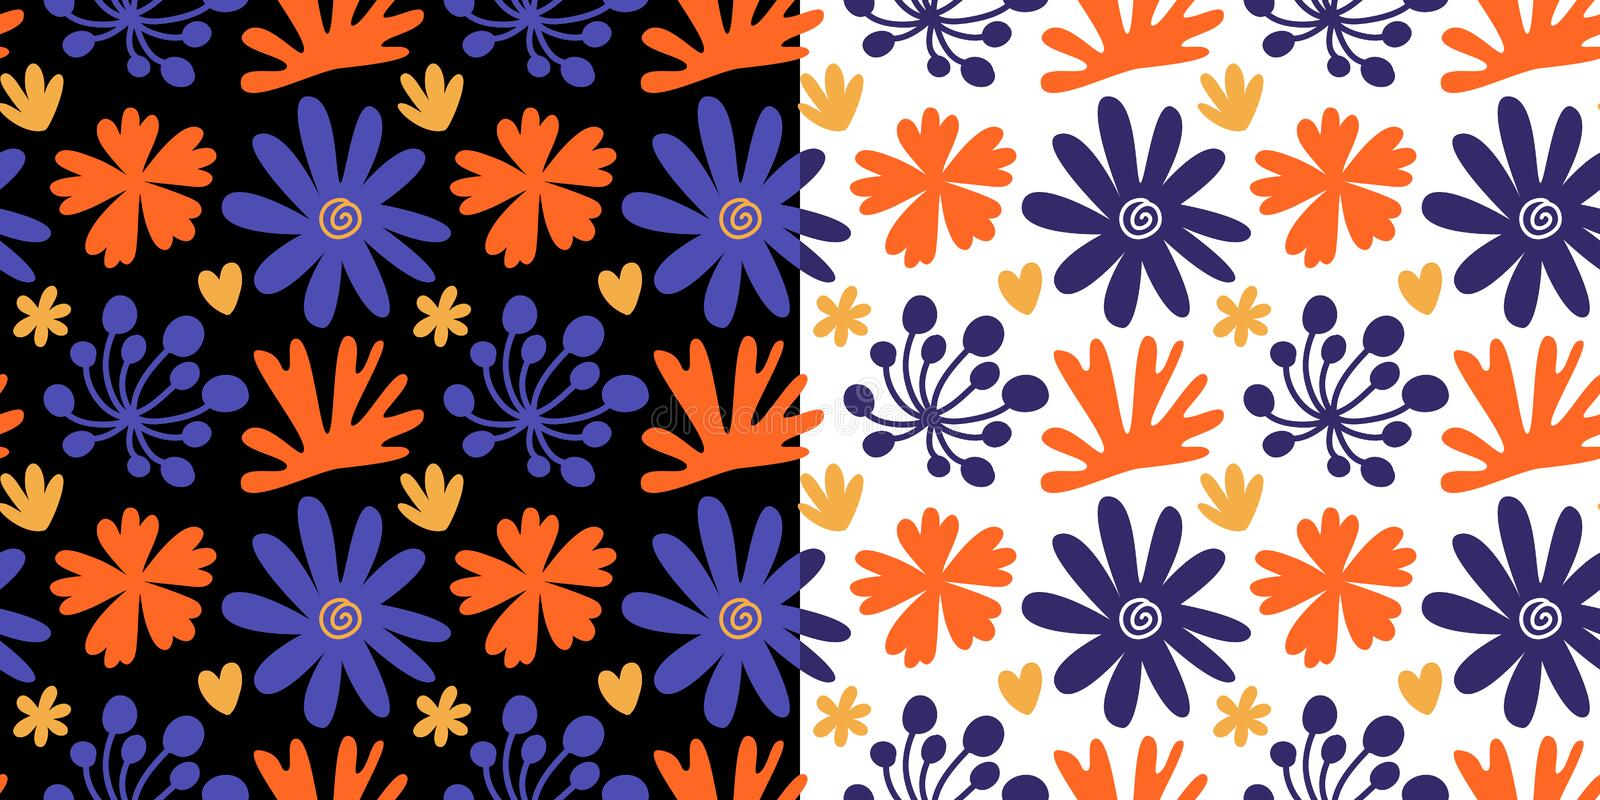 Floral seamless patterns set with colorful hand drawn flowers royalty free illustration